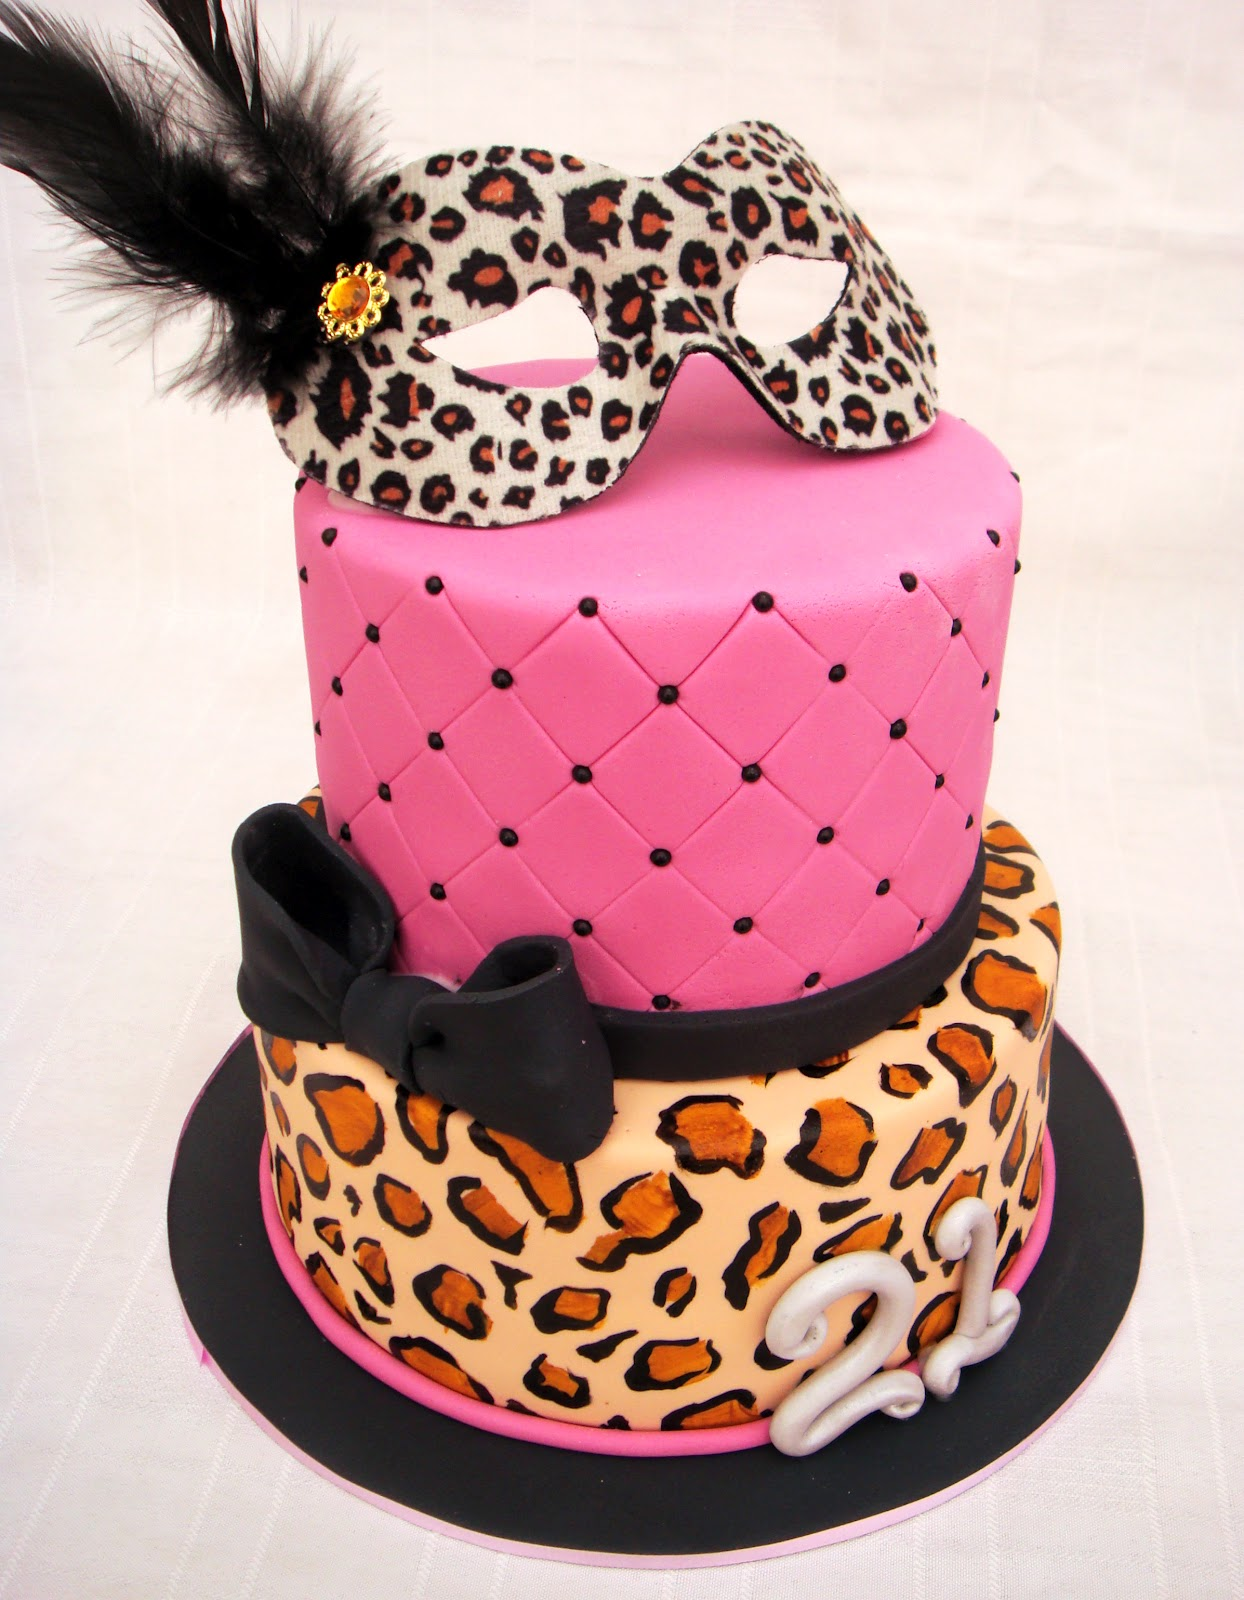 The Colours For Party Were Pink Black And Silver With Some Leopard Print Thrown In On 21st Cake